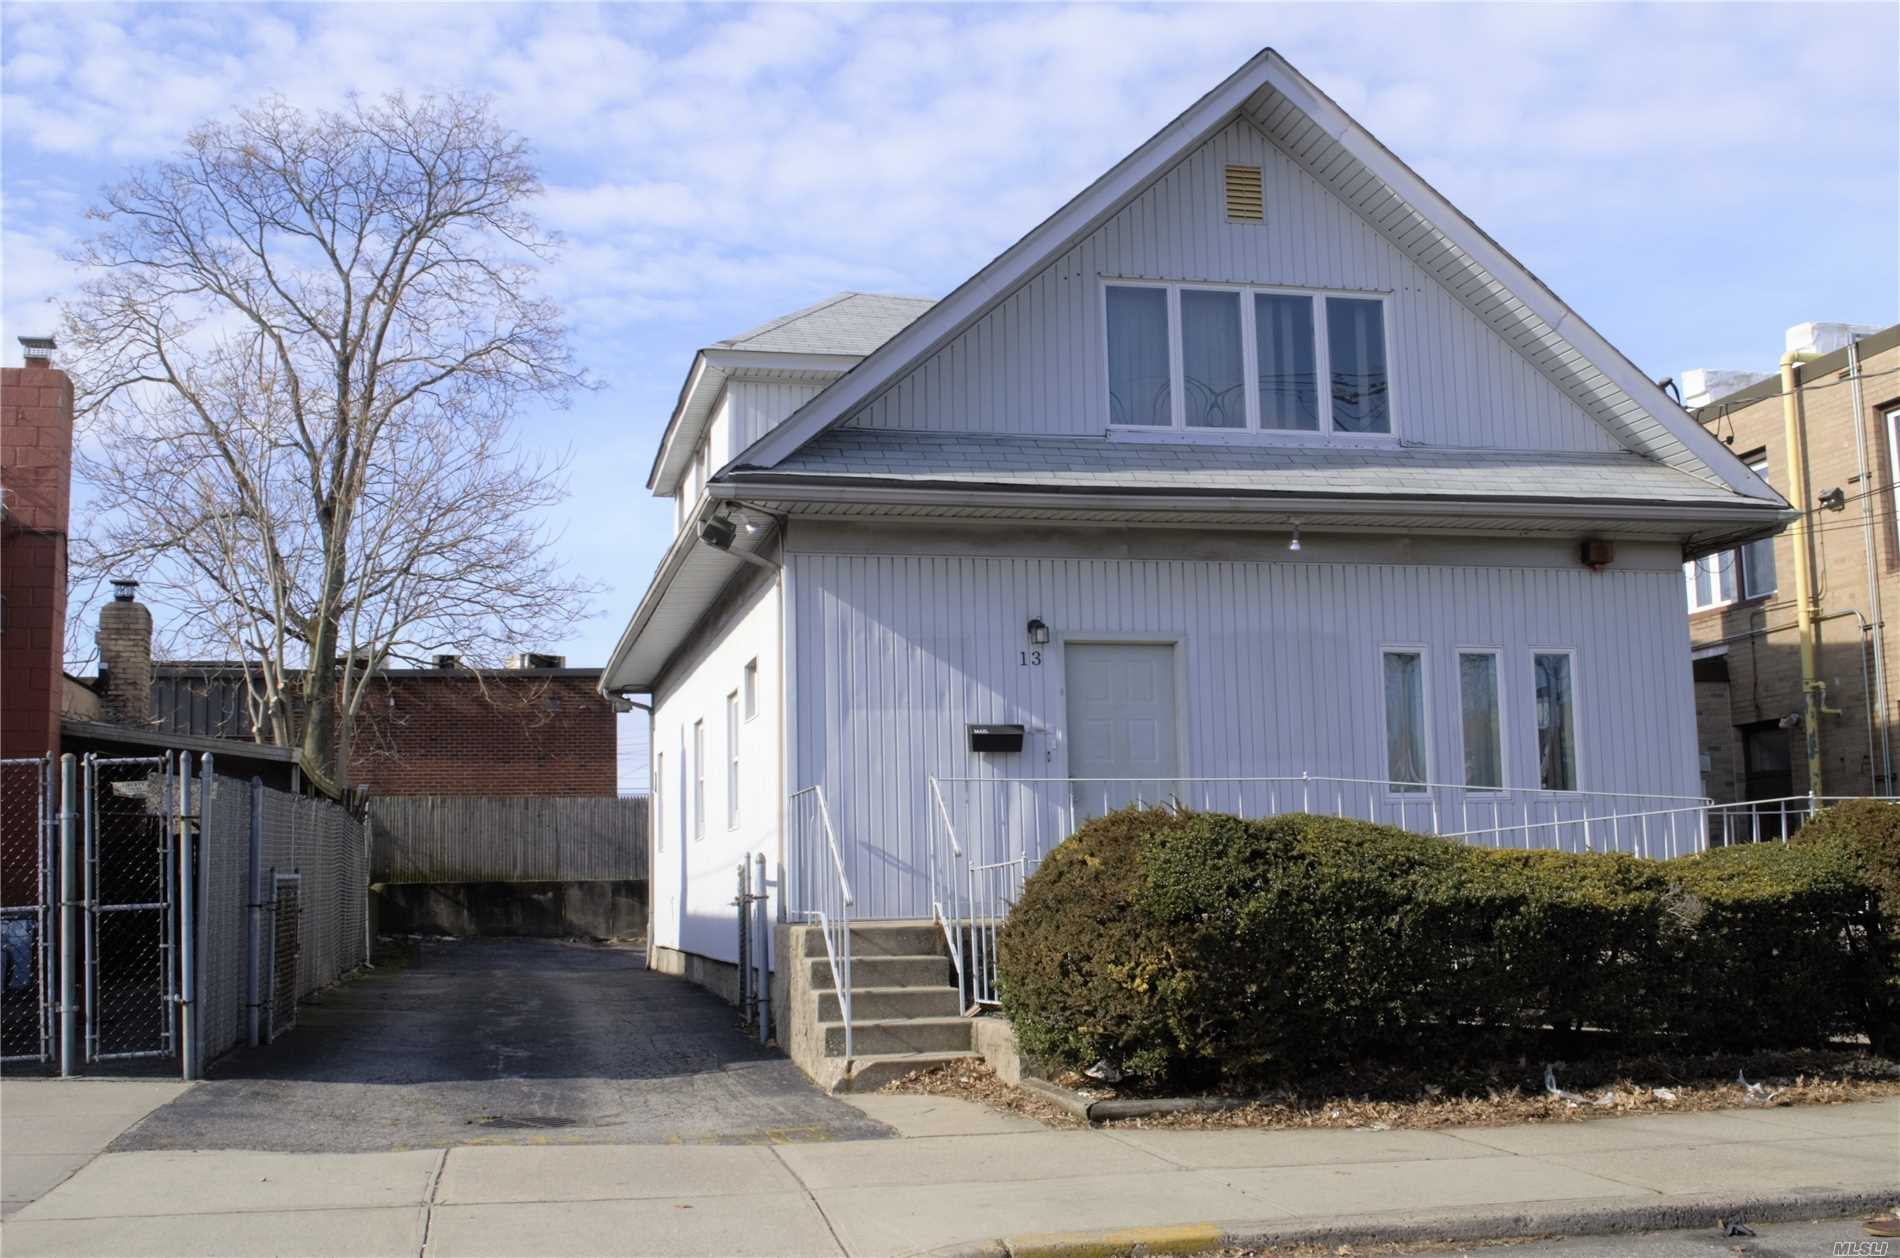 Mix Use Building. First Floor: Former Dentist Office With 1000 Square/Feet Of Space. Or An Office In General W/Cac 1st Fl. Only. & Full Unfinished Basement And It's Own Separate Entrance. Parking For 4/5 Cars And Additional Municipal Parking Across The Street. First Floor Has A Handicap Access. Full Bath. Second Floor: Living Rm. Eat In Kitchen. 2 Bedrooms. Full Bath. + Attic... 2 Boilers. 1 Hot W. Heater. It Could Be Converted Back To 2 Fam House W/Proper Permits. Close To All.